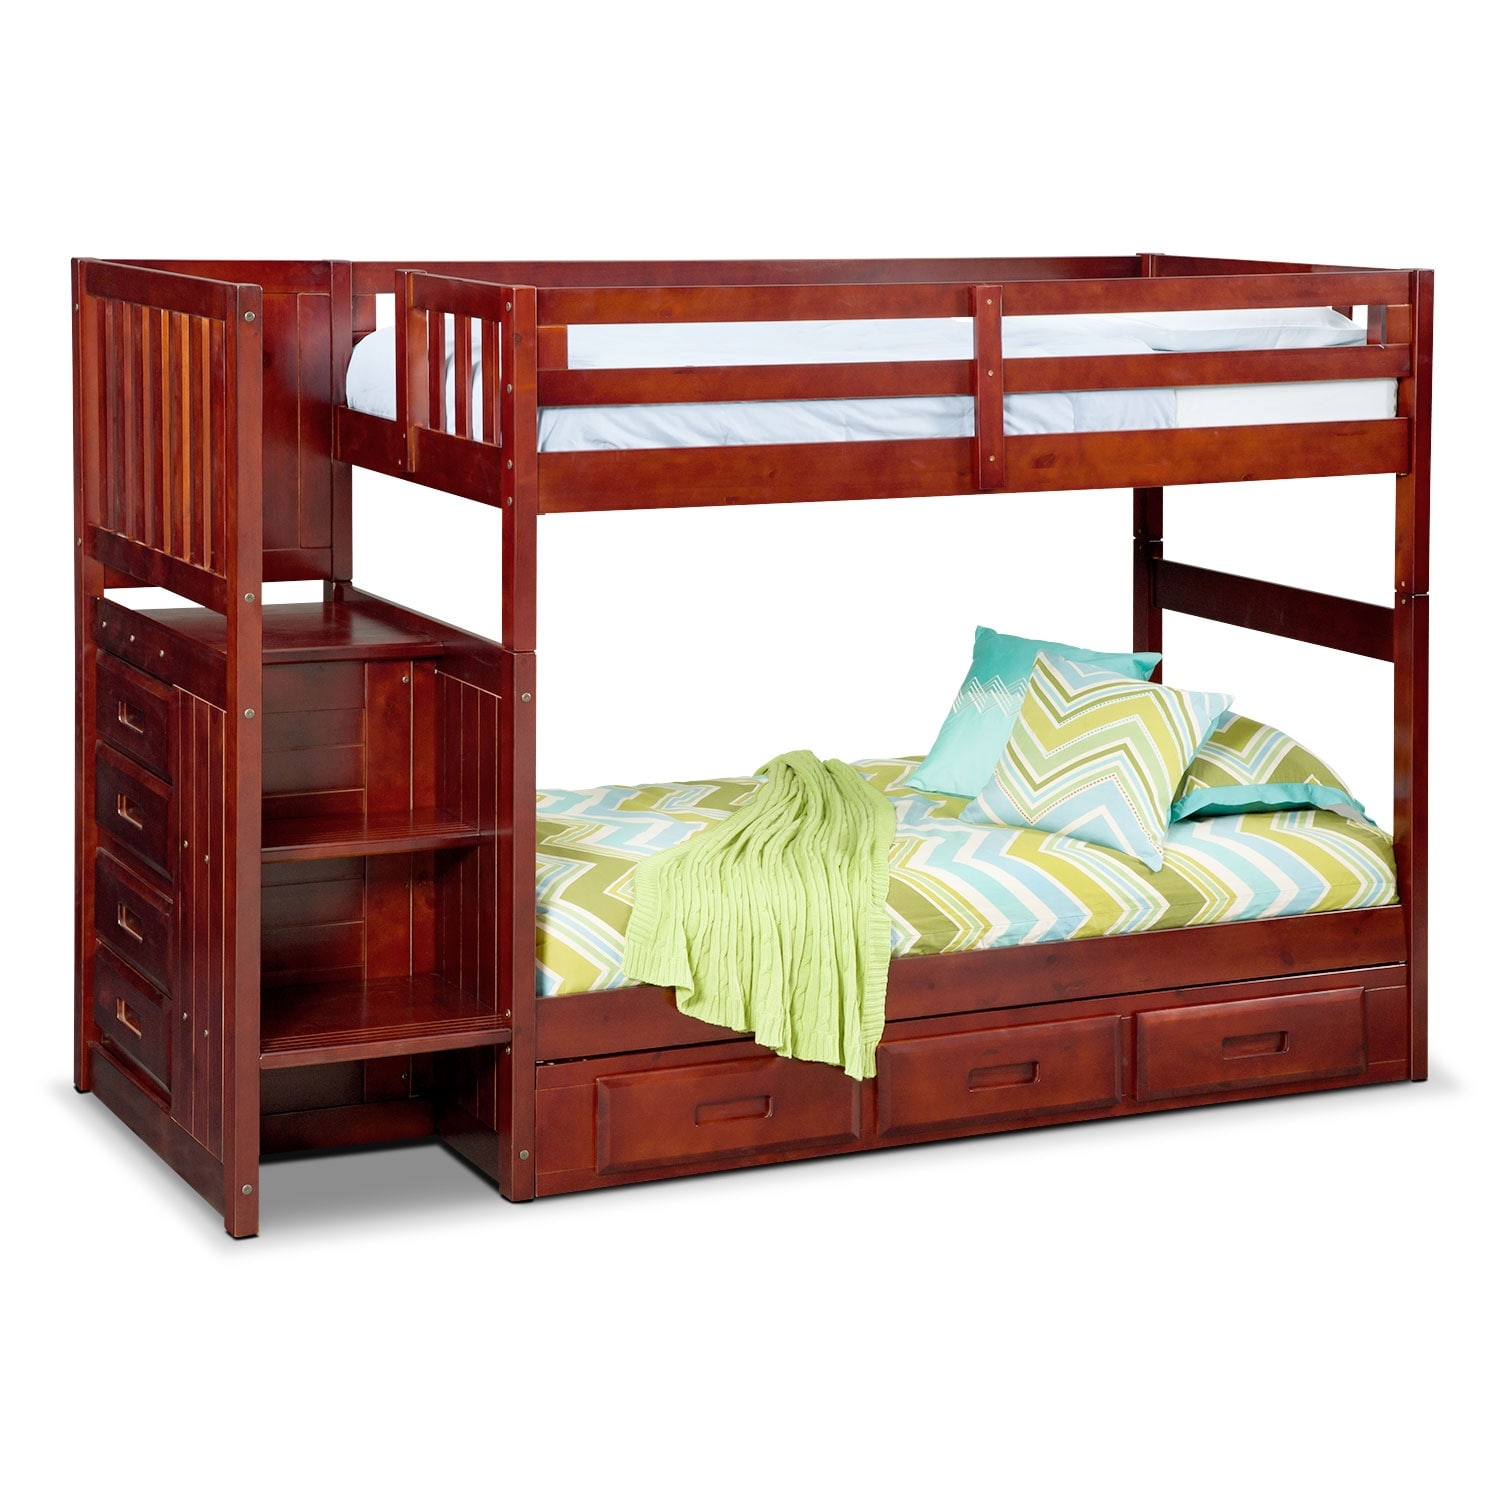 size city full dressers bedroom value store sets of furniture